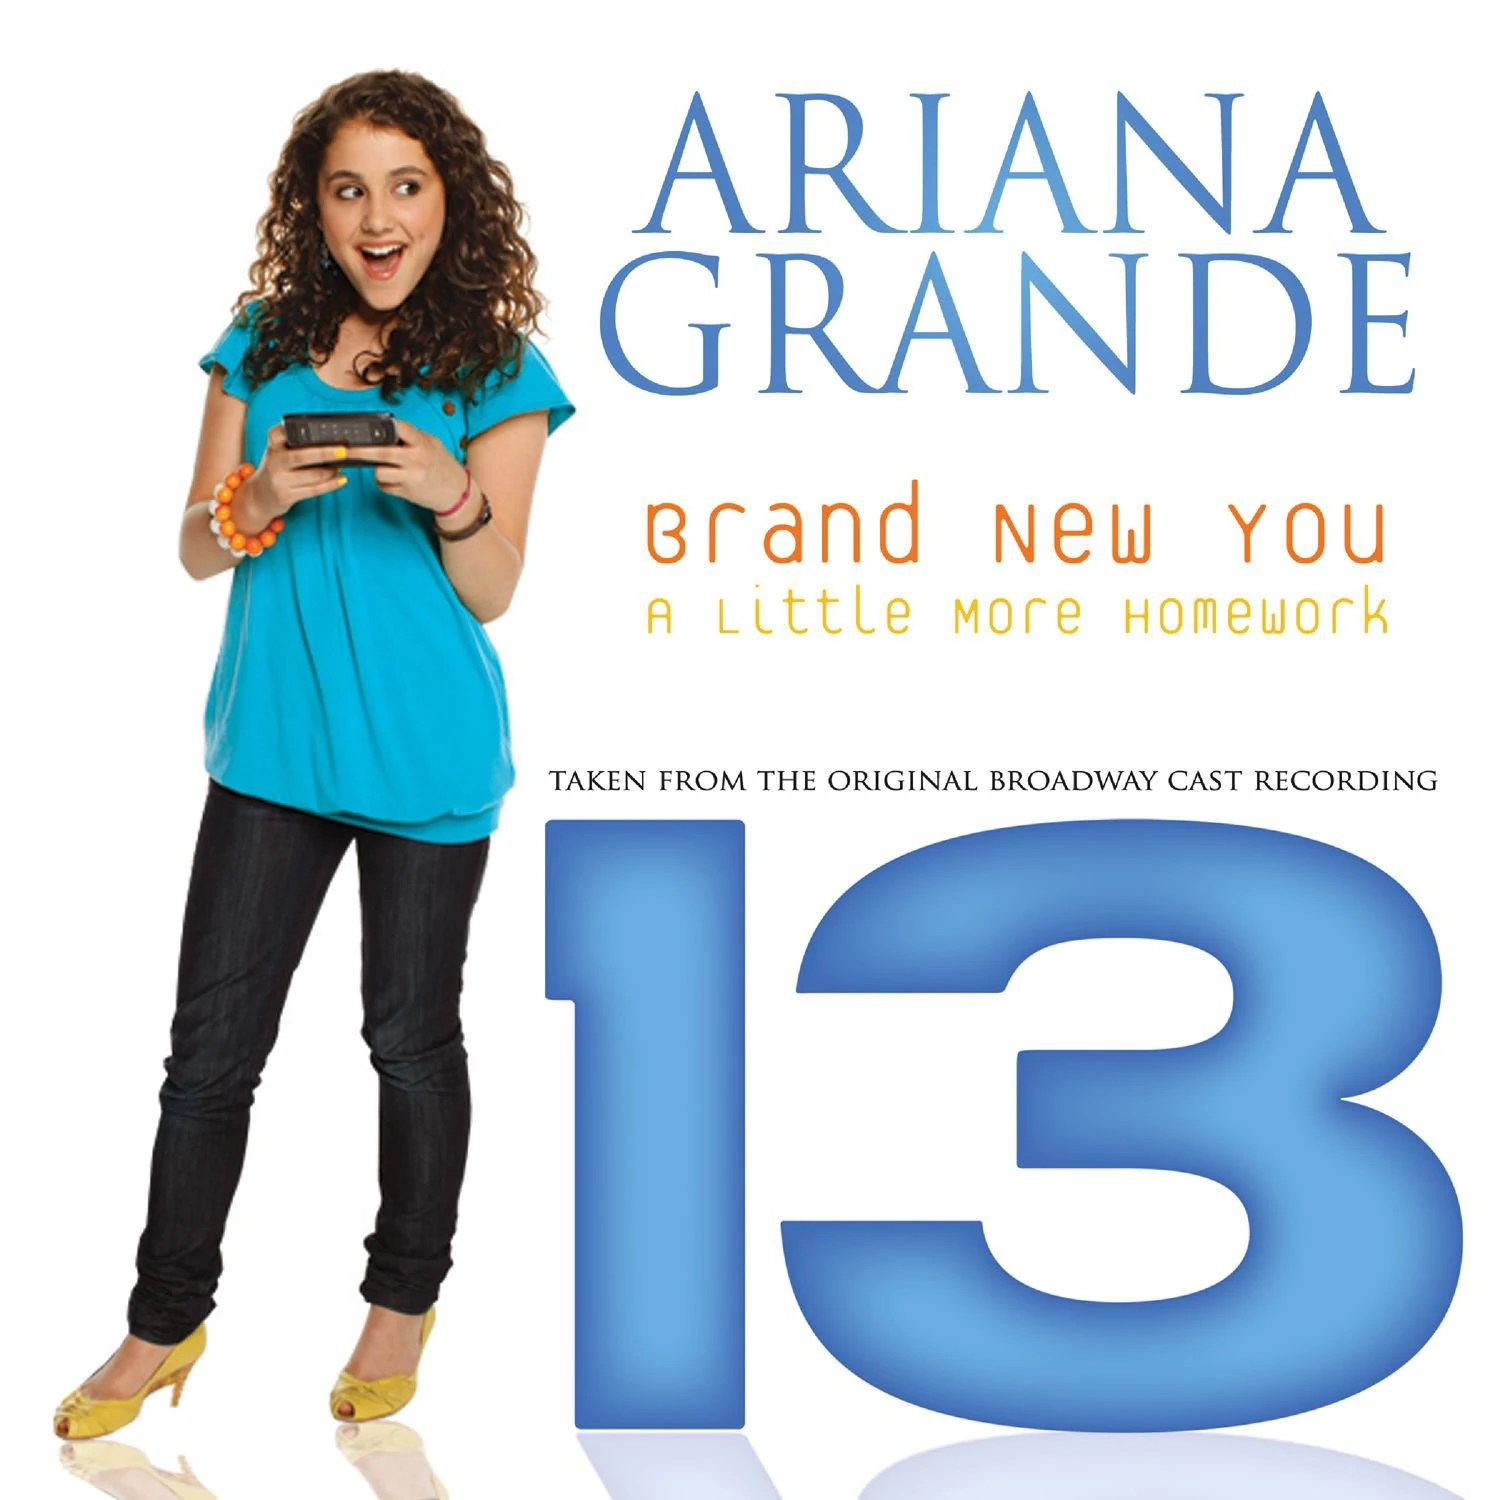 Brand New You | Ariana Grande Wiki | FANDOM powered by Wikia